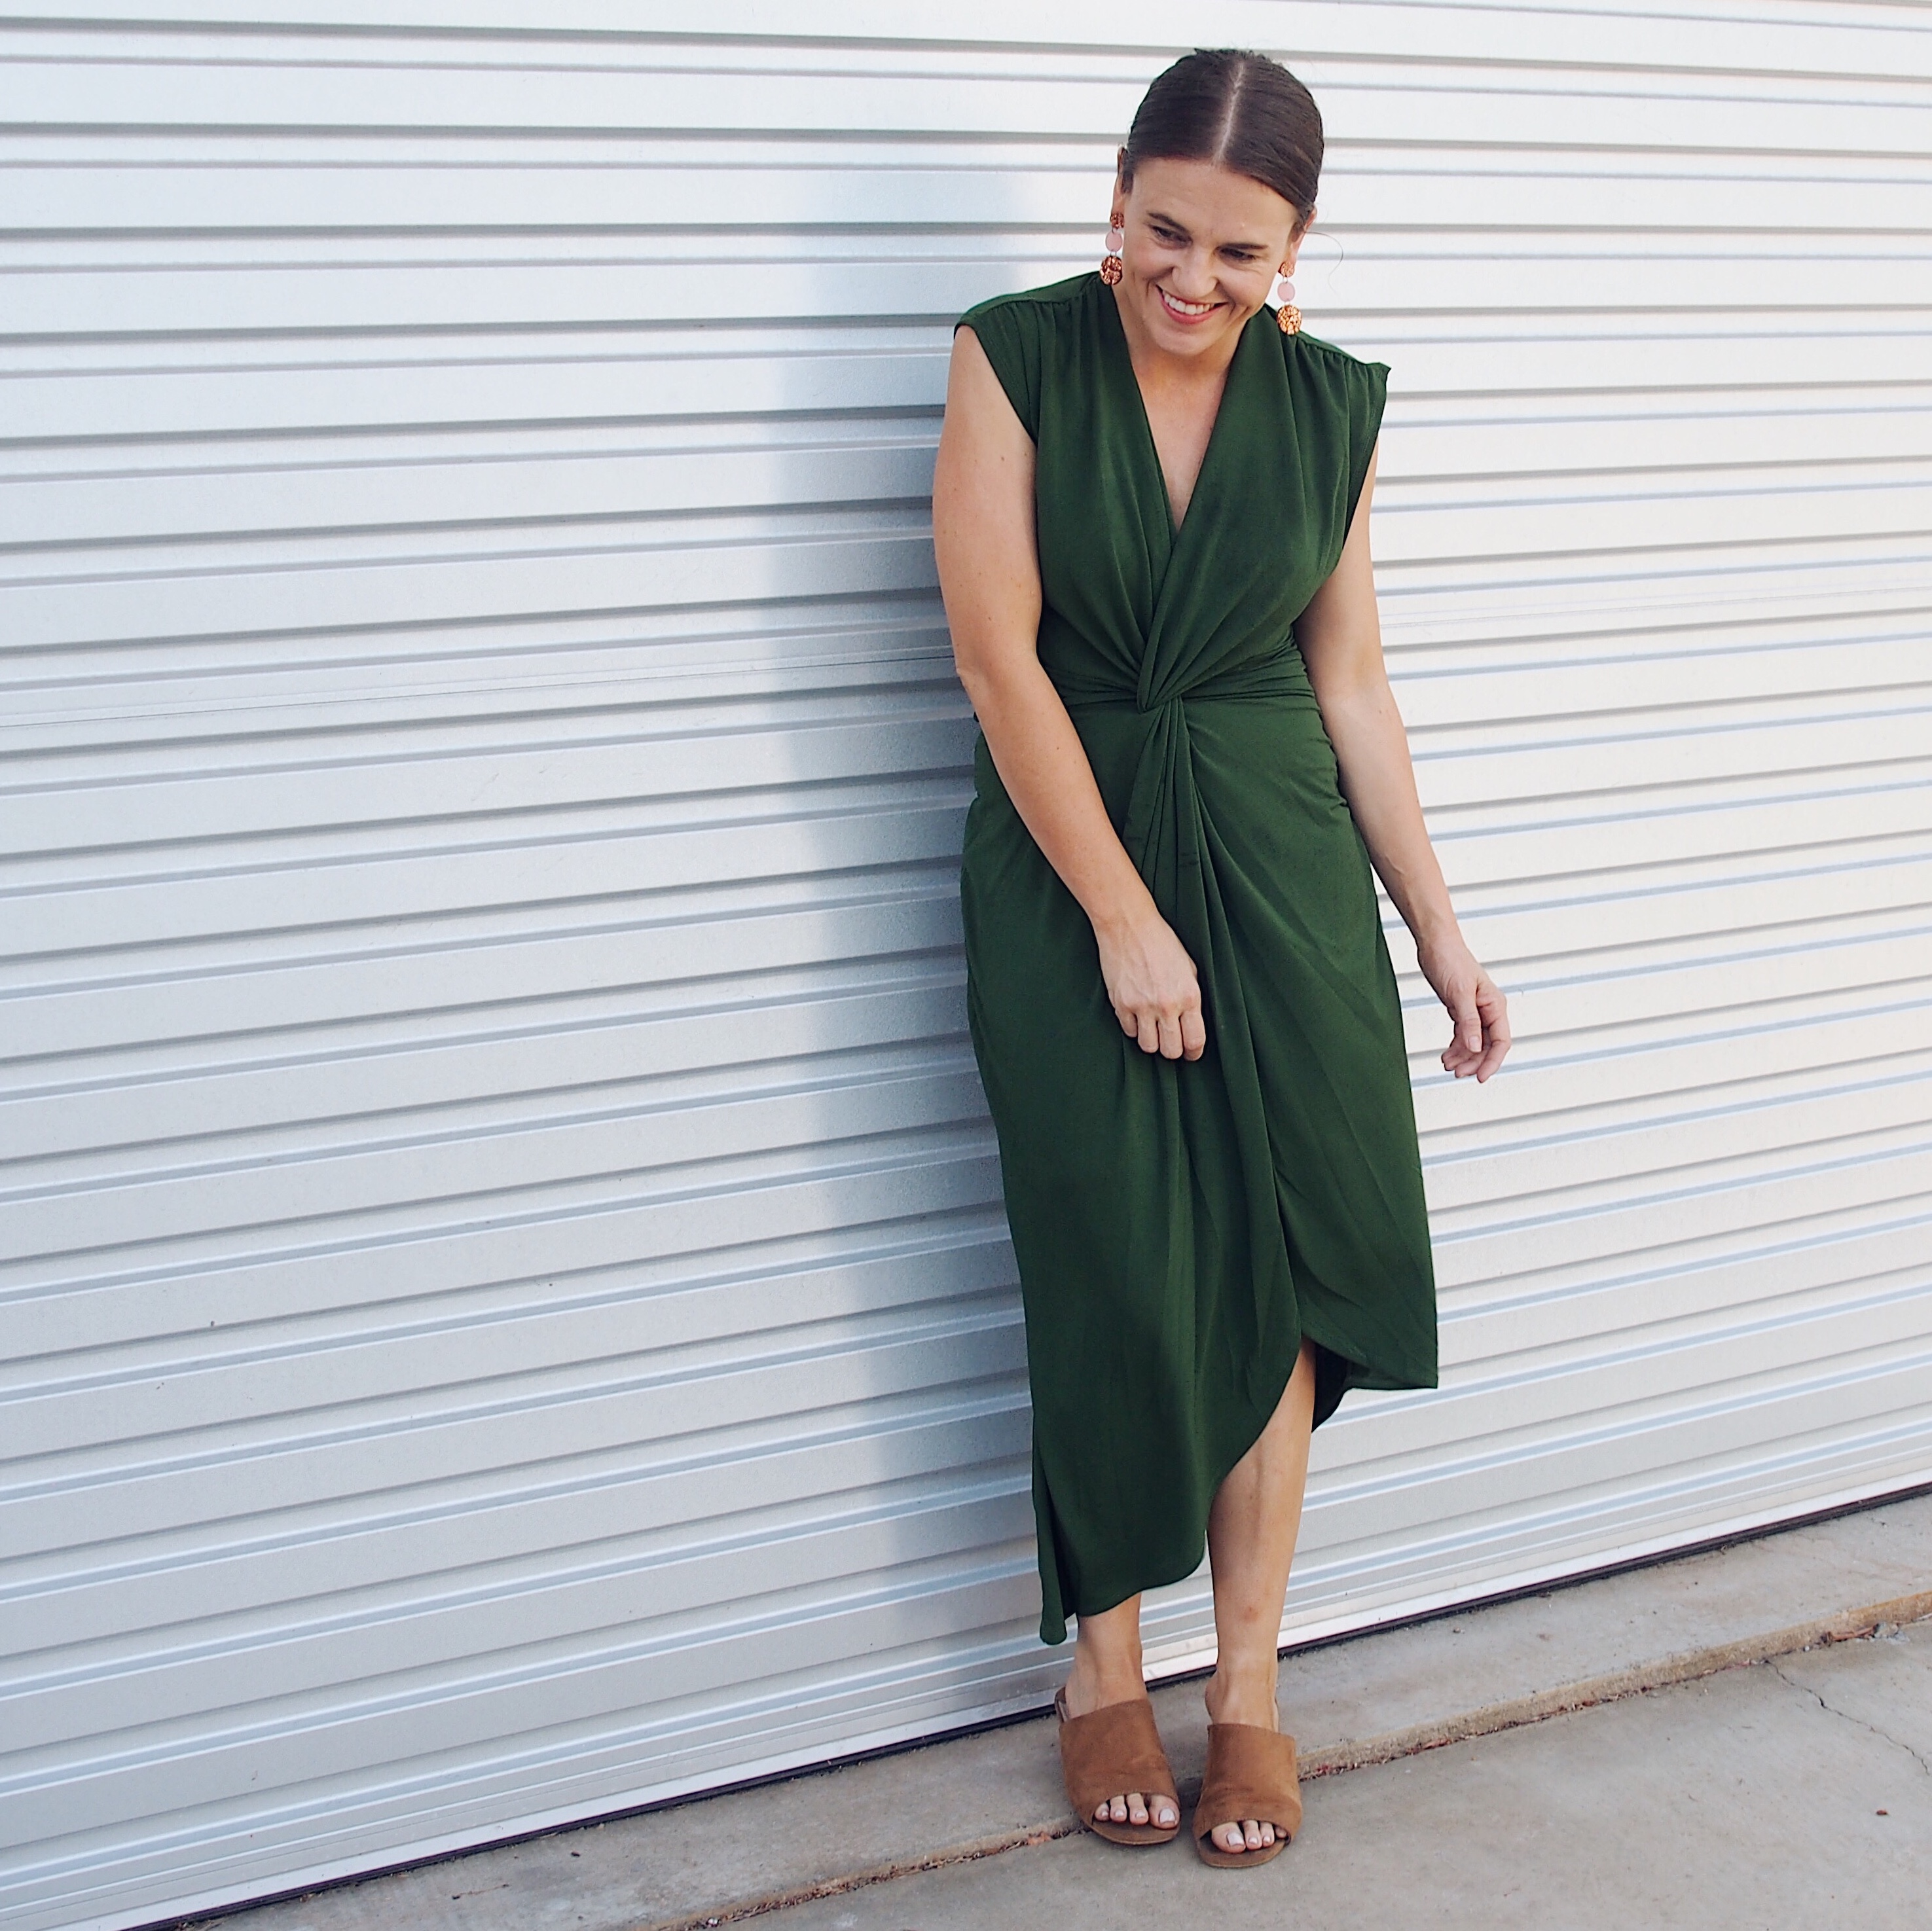 8 Red, Green and White Dresses Perfect For Christmas | What I Wore ...